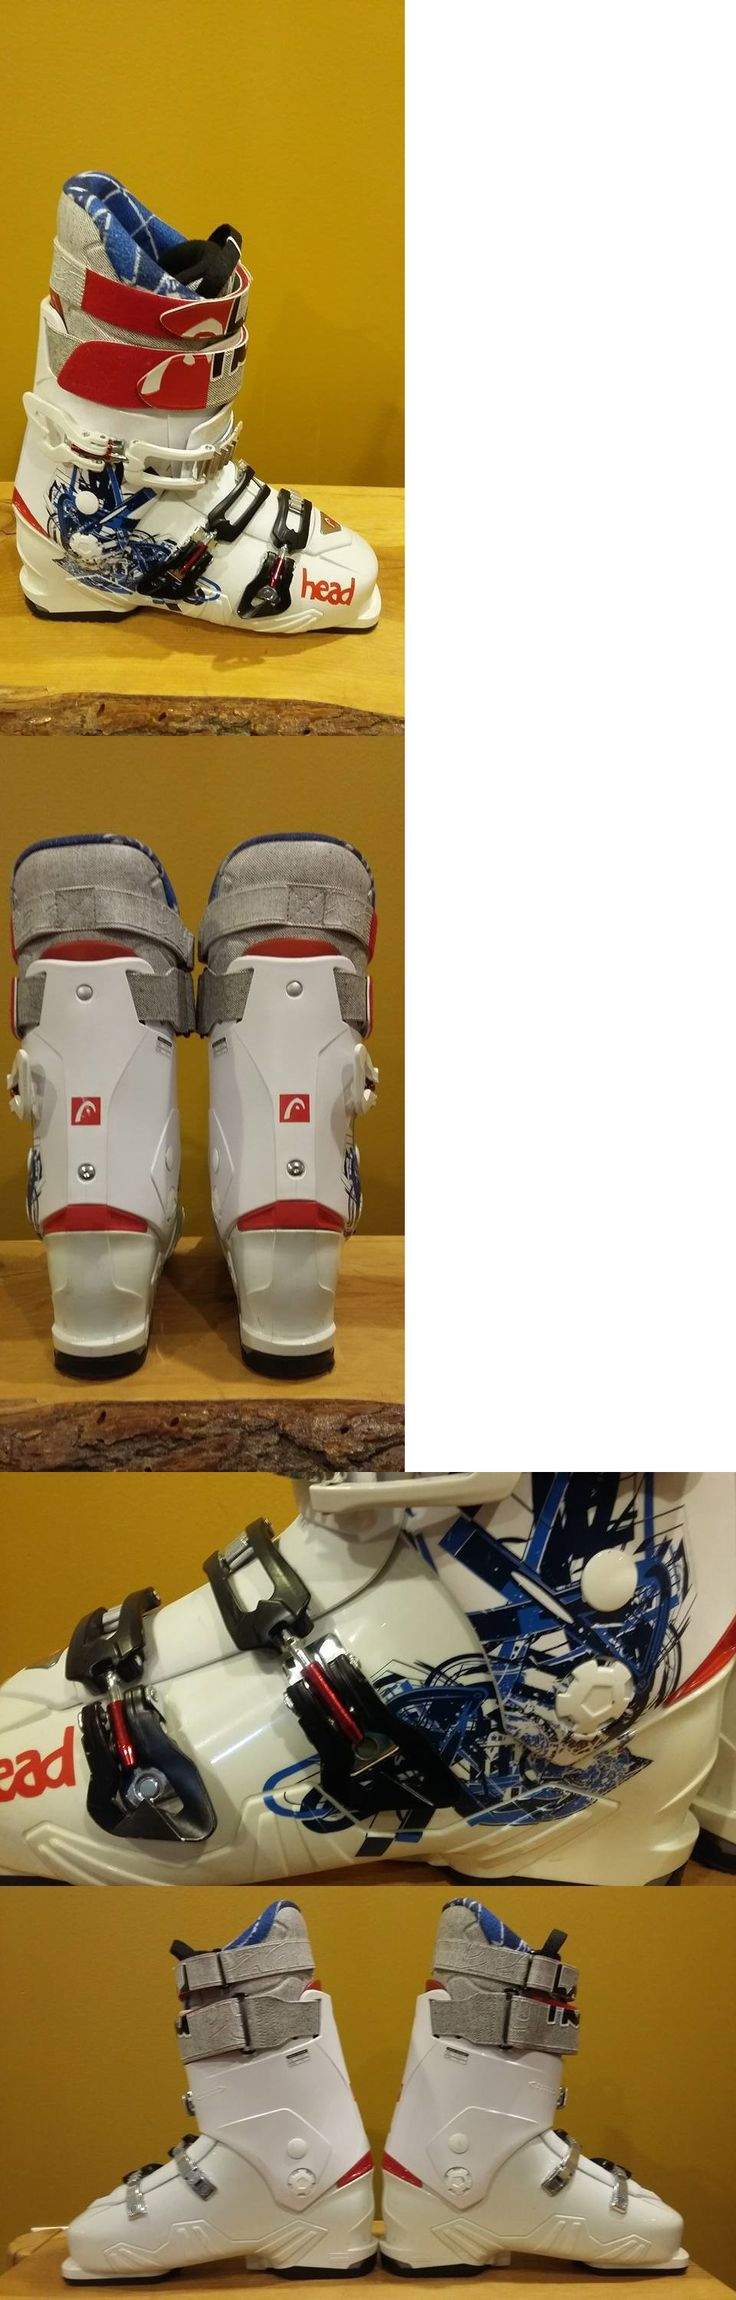 Men 16061: Ski Boots ( 28.5 ) Head The Show 1 Hf Ski Boots -> BUY IT NOW ONLY: $199.99 on eBay!